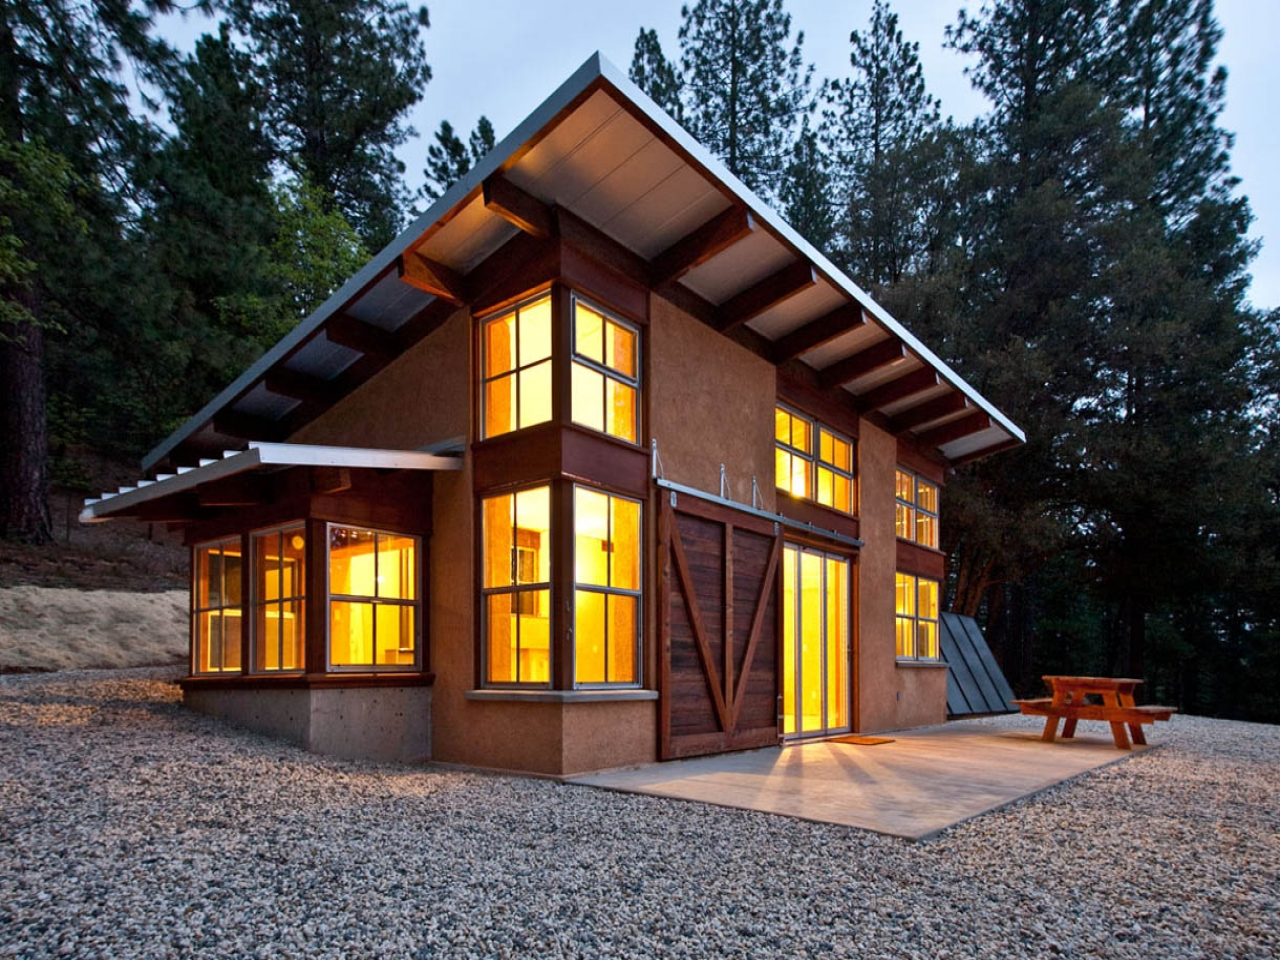 Shed Roof Cabin With Loft Shed Roof Cabin House Plans